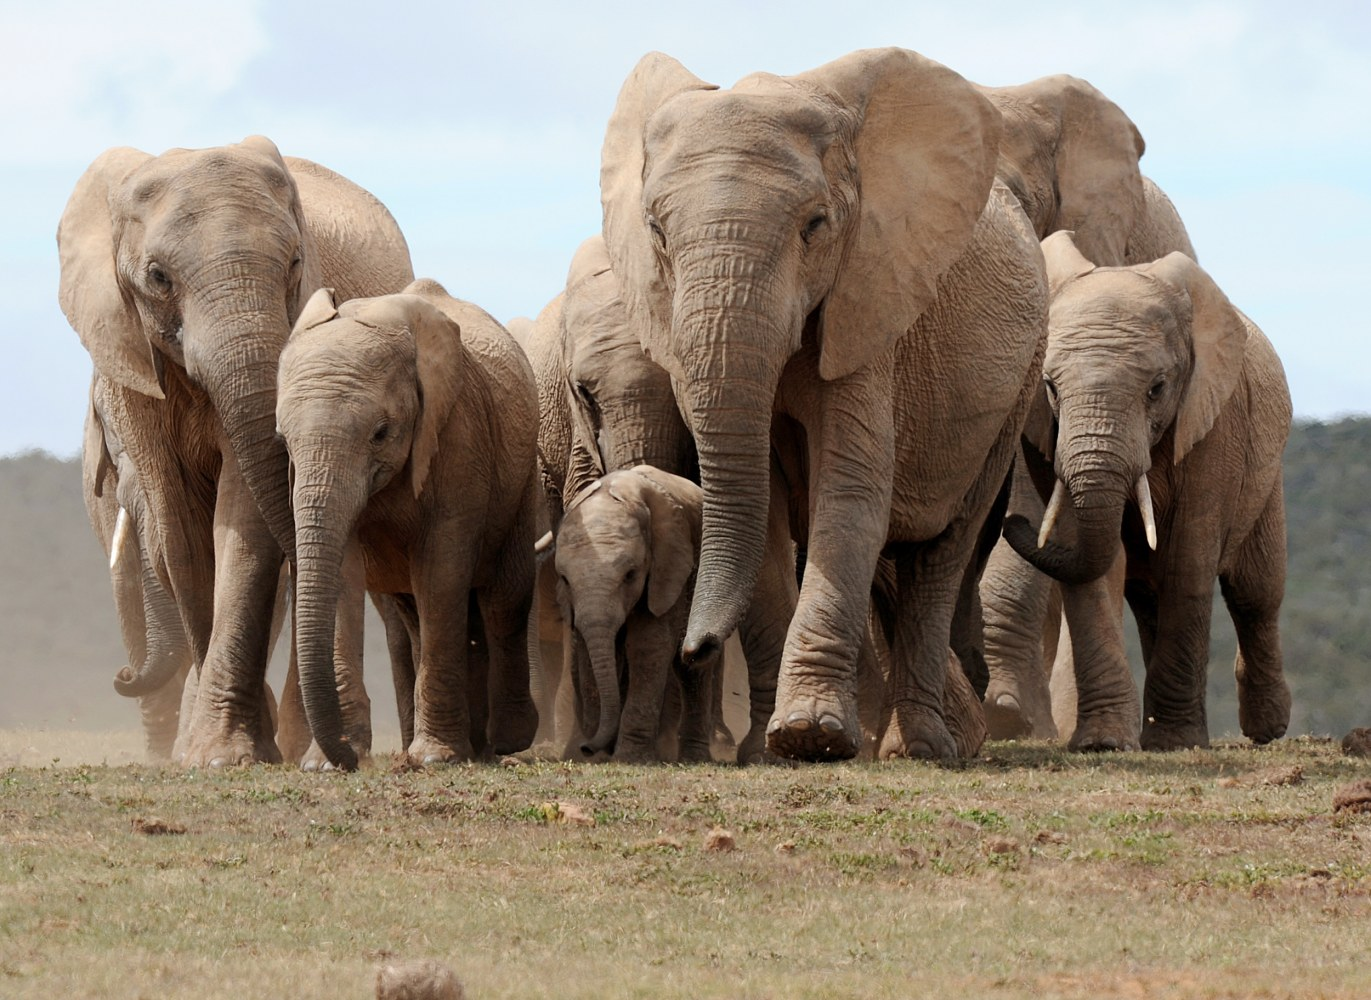 wild elephants sleep just 2 hours a day puzzling scientists in